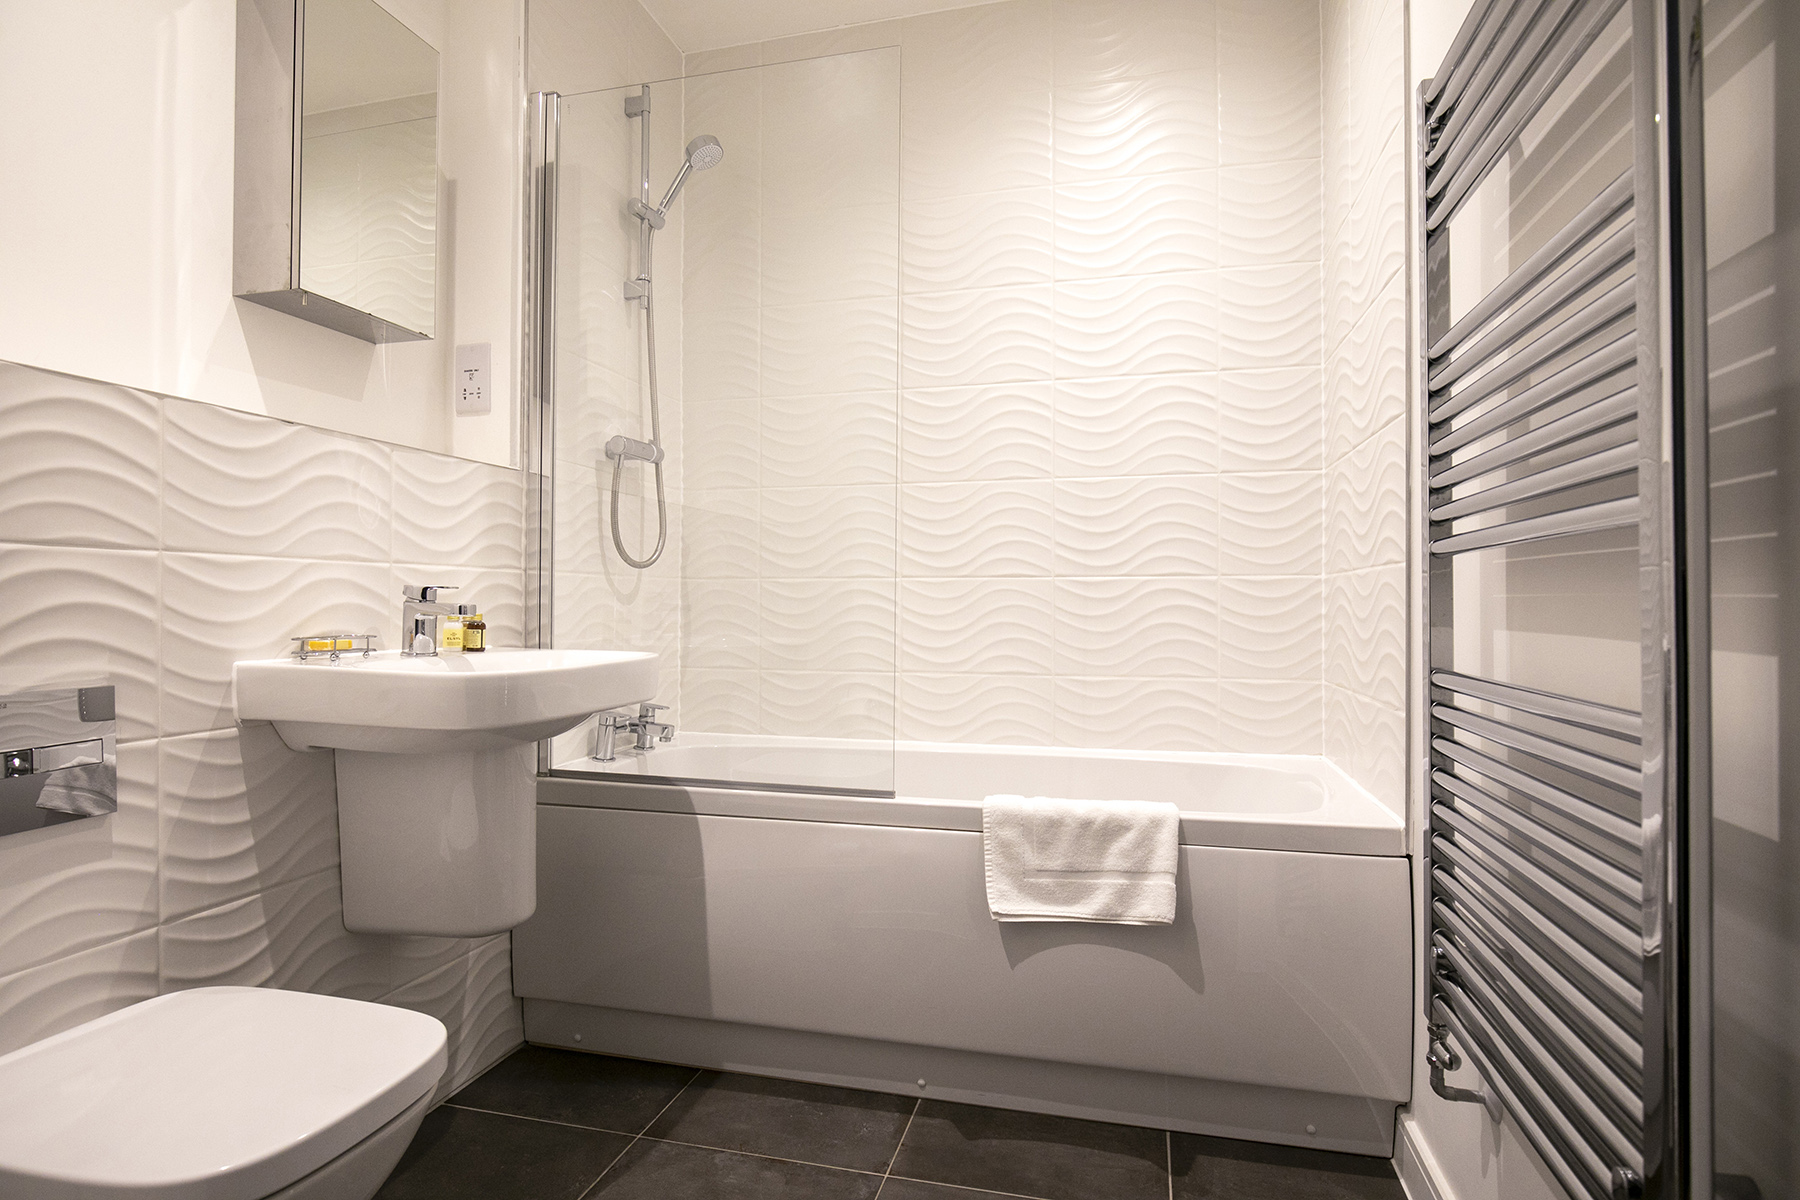 Bathroom at Wey Corner Apartment, Centre, Guildford - Citybase Apartments